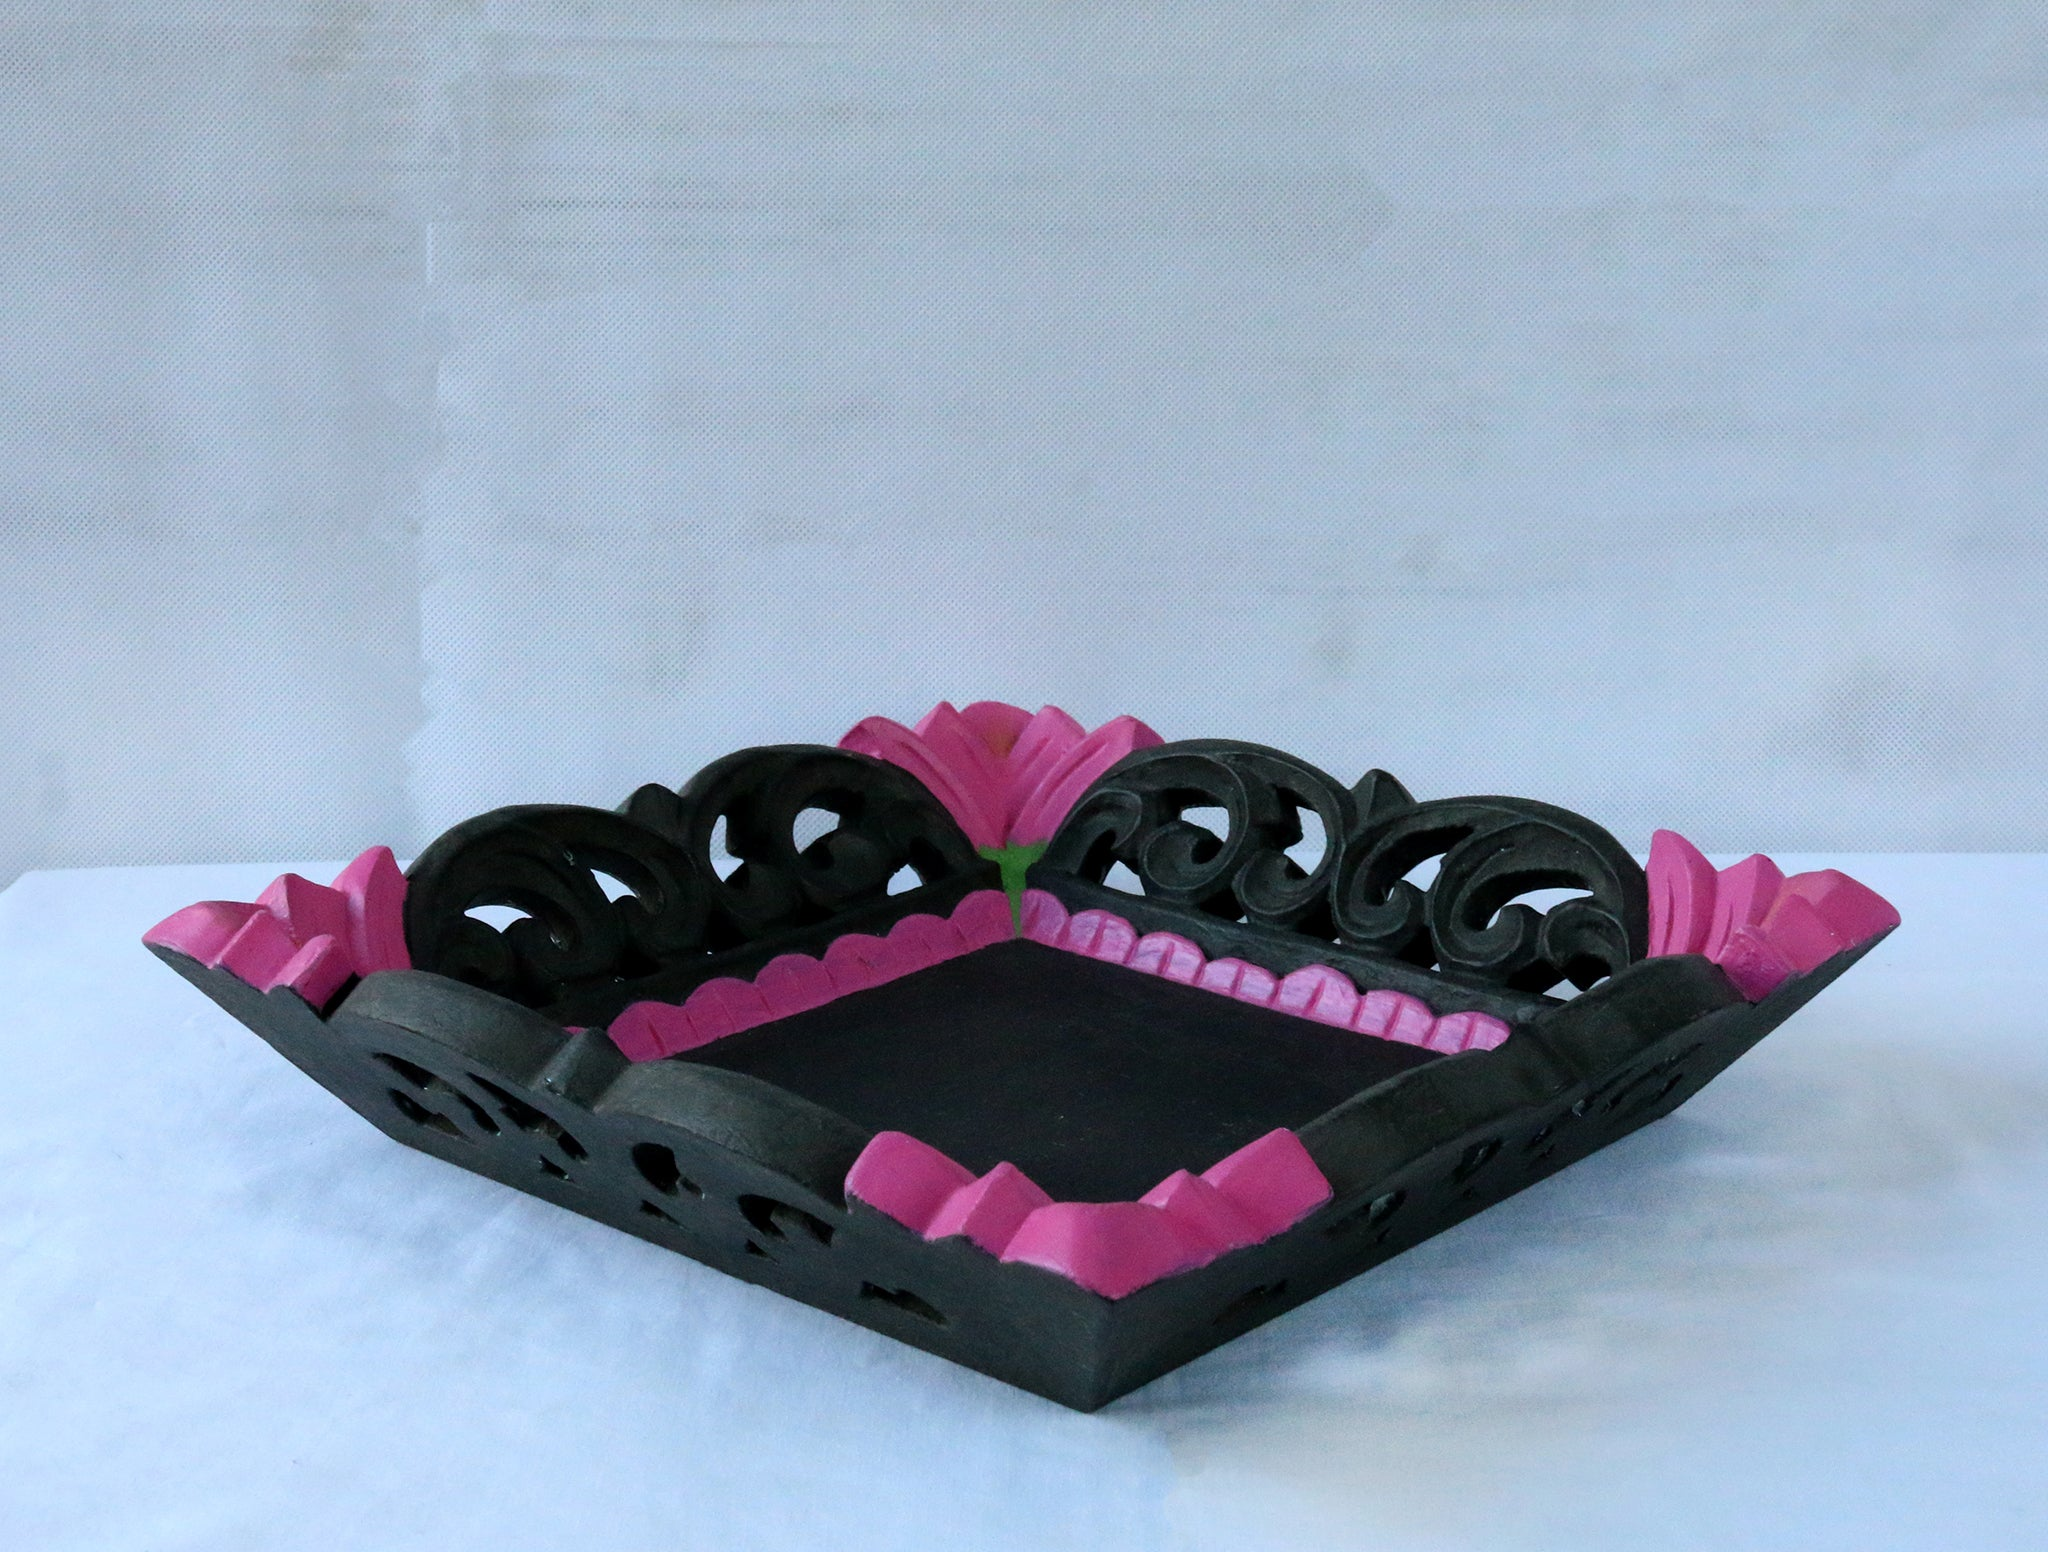 Charcoal and pink tray side view